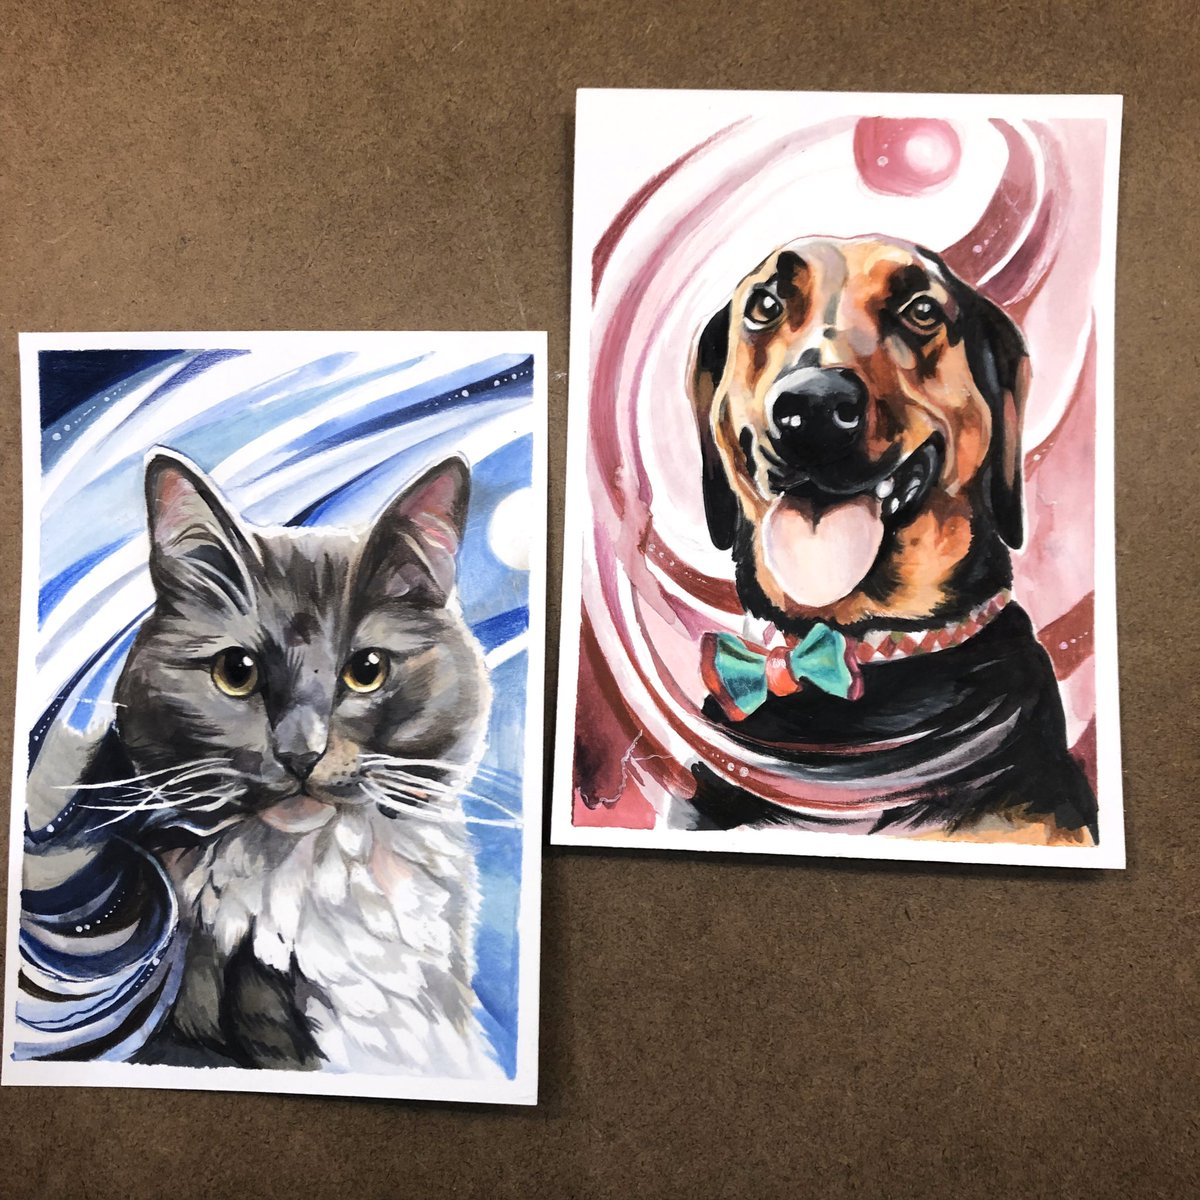 Day 95- Skylar and Walter  2 mini commissions for some good friends! <3  . . . #petportrait #dogdrawing #catdrawing #commission #illustration #watercolorpic.twitter.com/PcJIpWzPK8